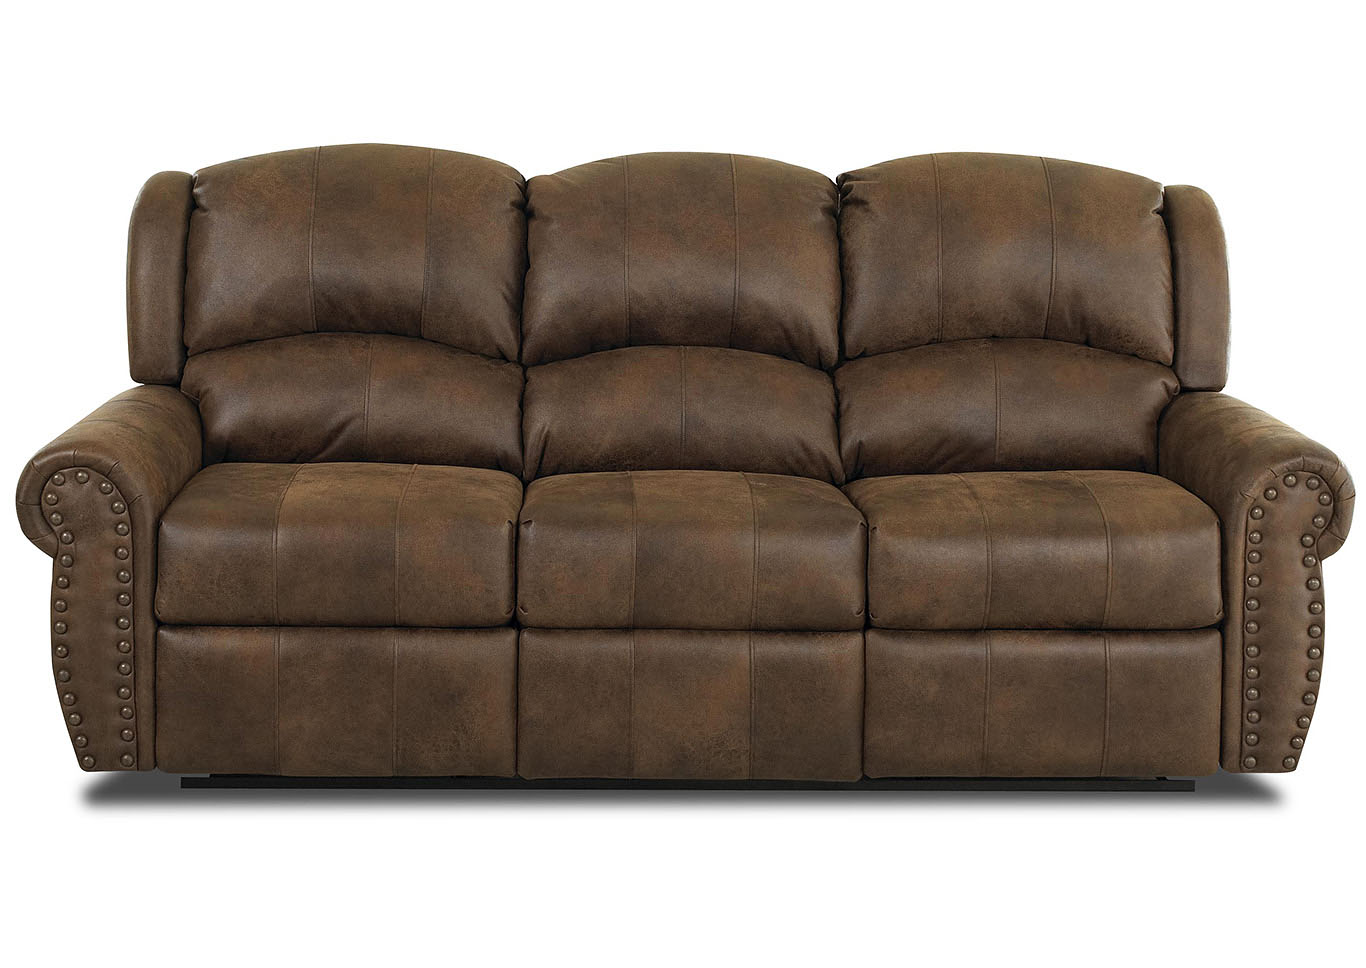 Mcalister Rust Brown Reclining Fabric & Leather Sofa,Klaussner Home Furnishings